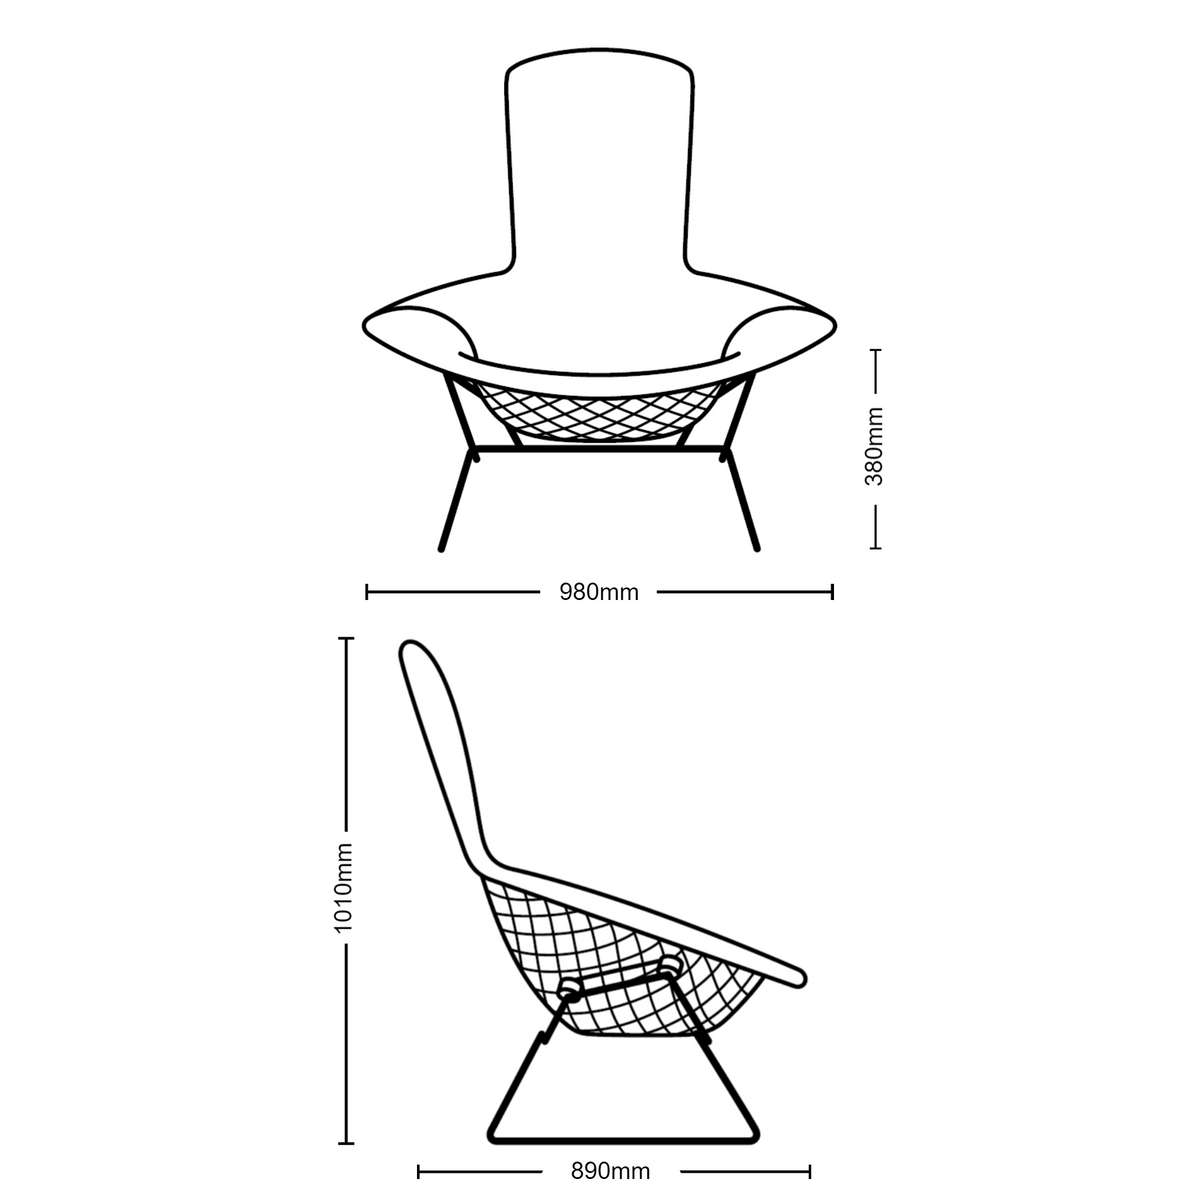 Dimensions for Knoll Bertoia Bird Lounge Chair